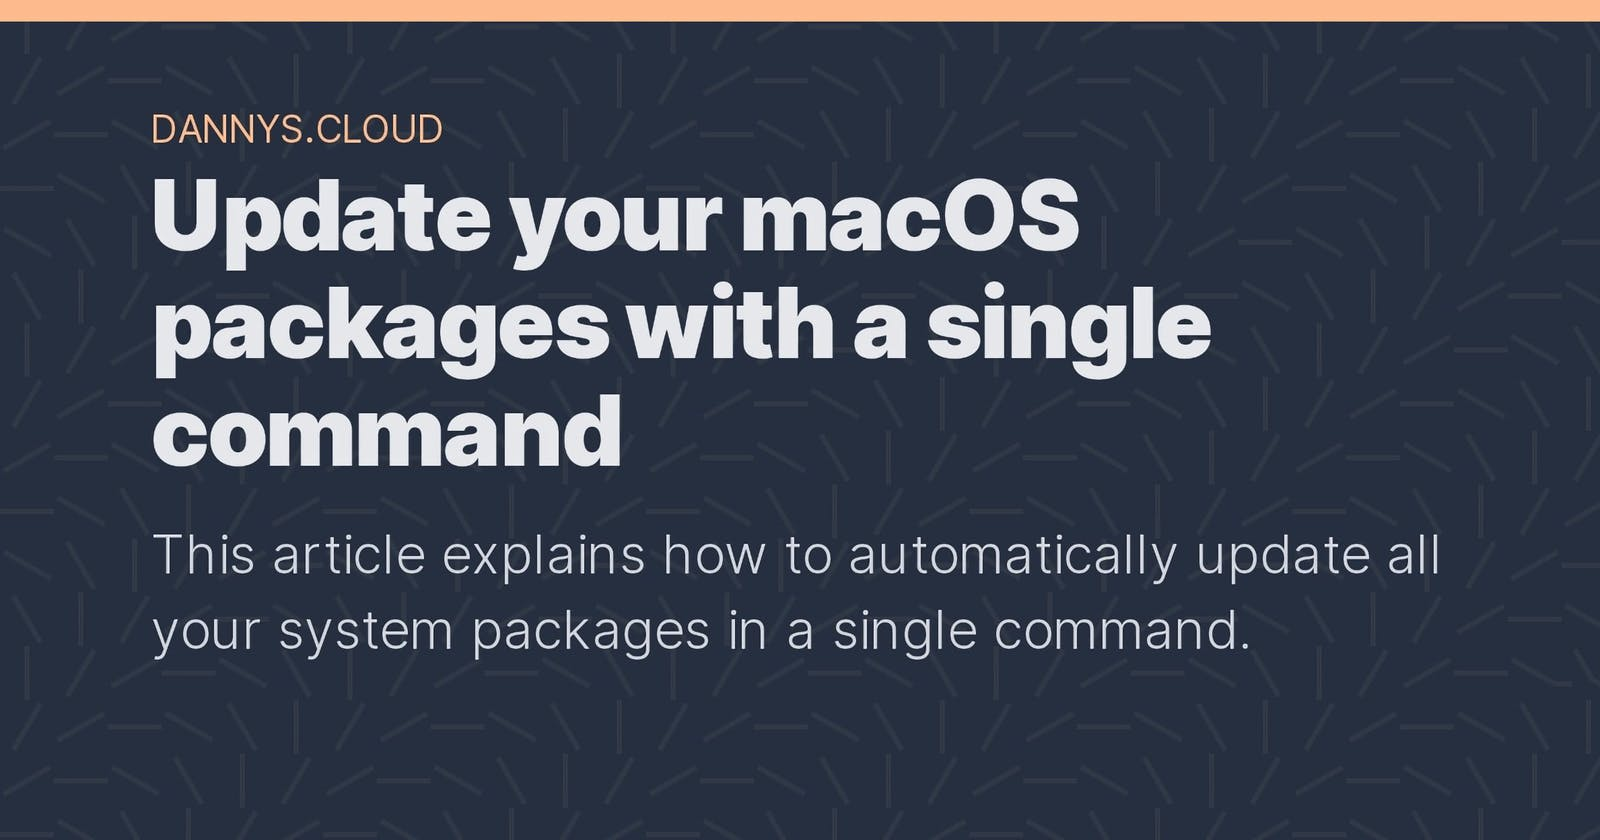 Update your macOS packages with a single command